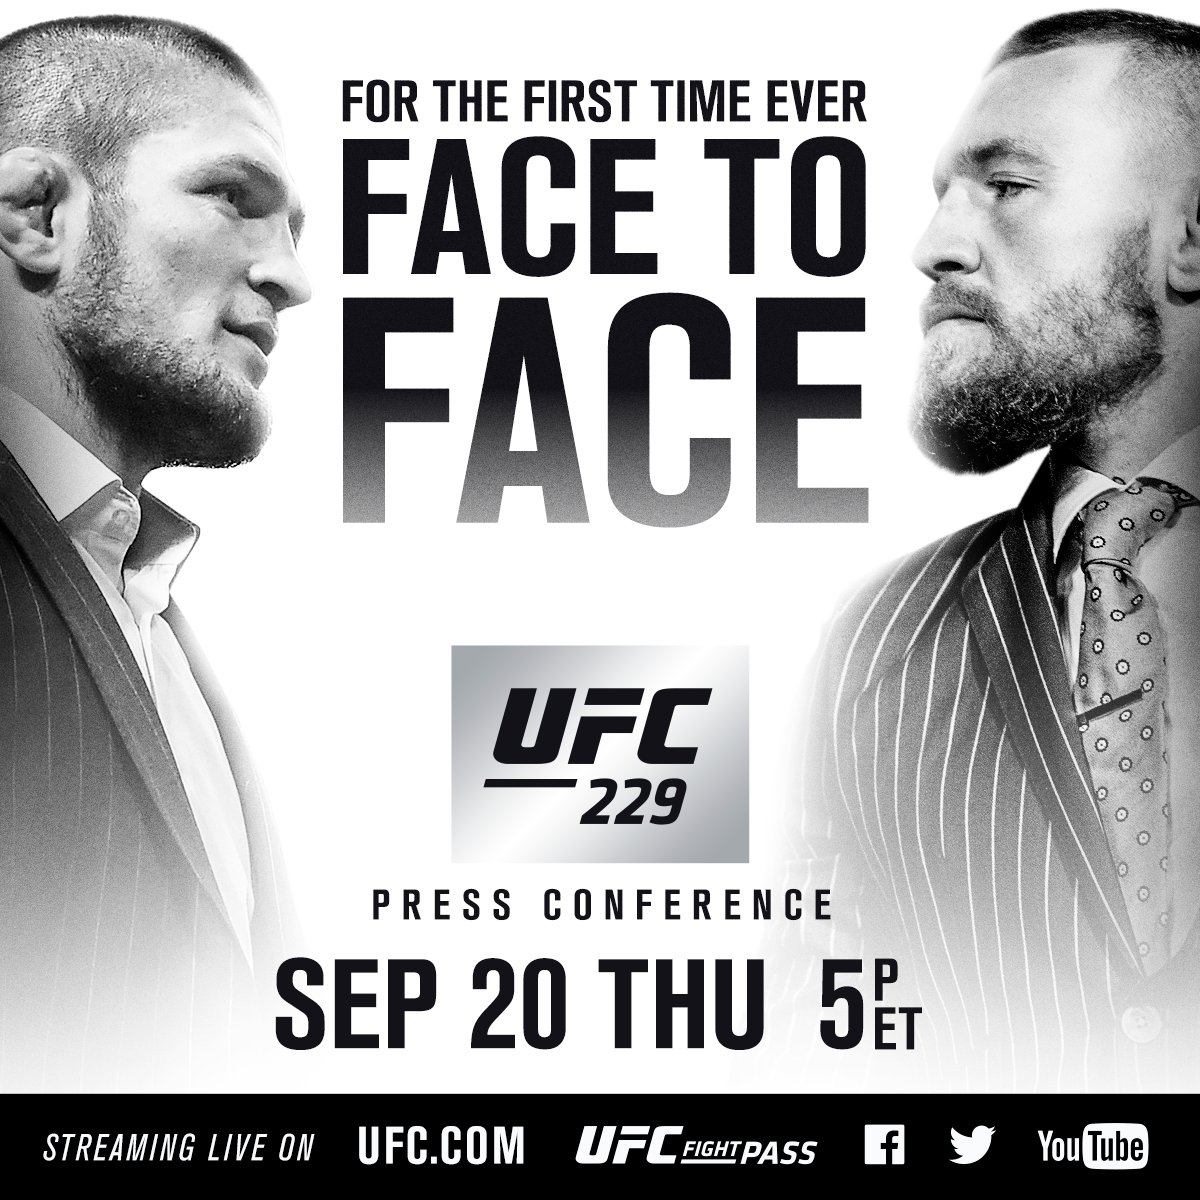 FOR THE FIRST TIME EVER. #UFC229 https://t.co/SMx8PMEYI8